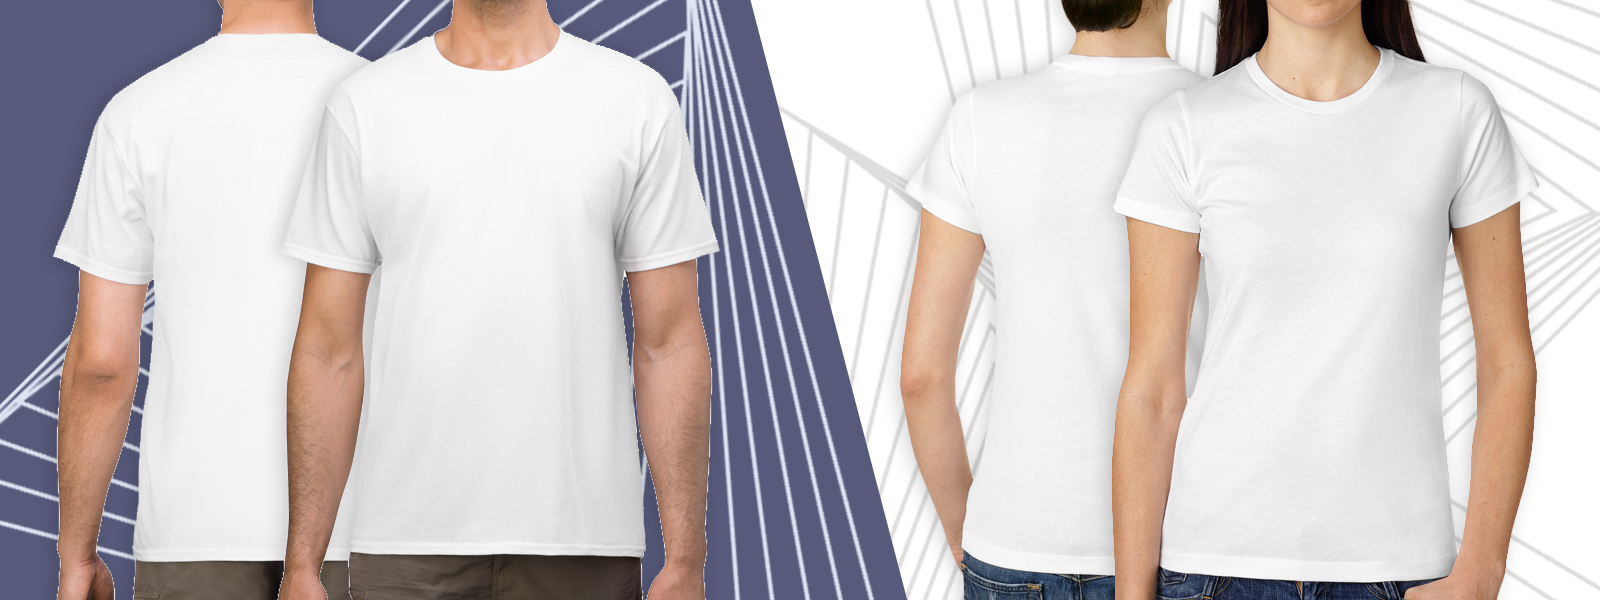 teespedia-banner-shirt-category.jpg